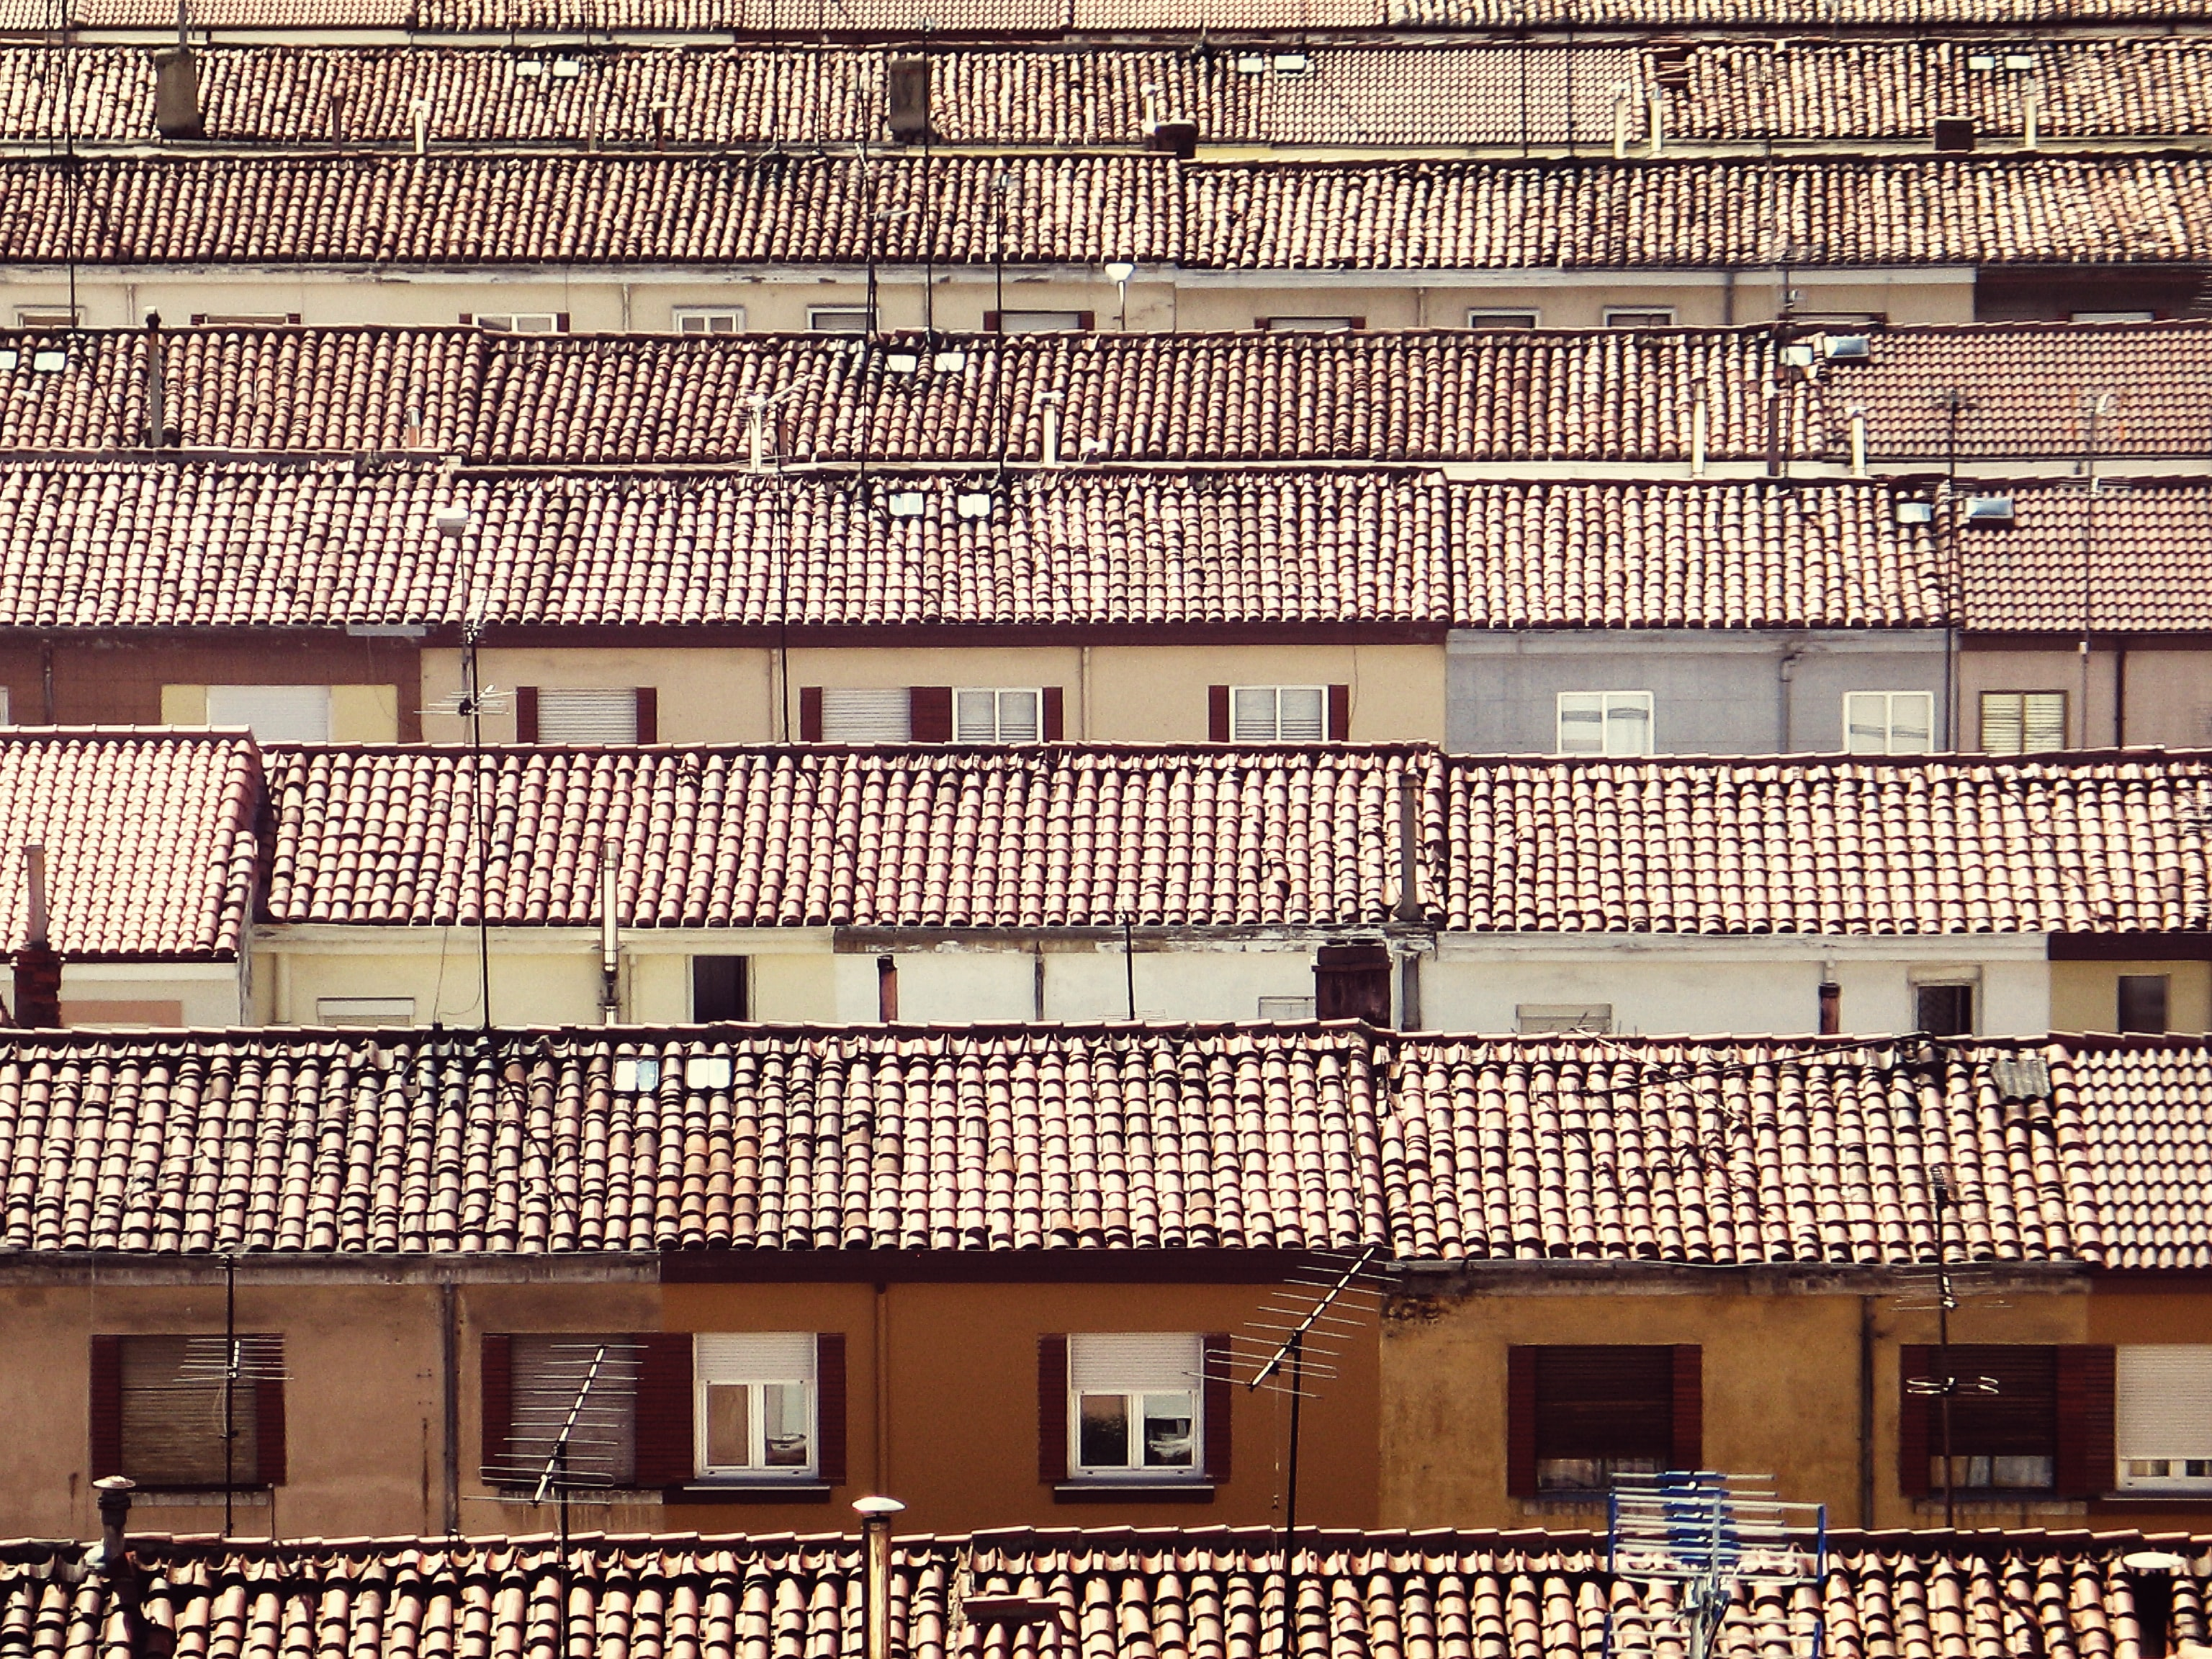 bird's-eye view photography of houses with brown shingles